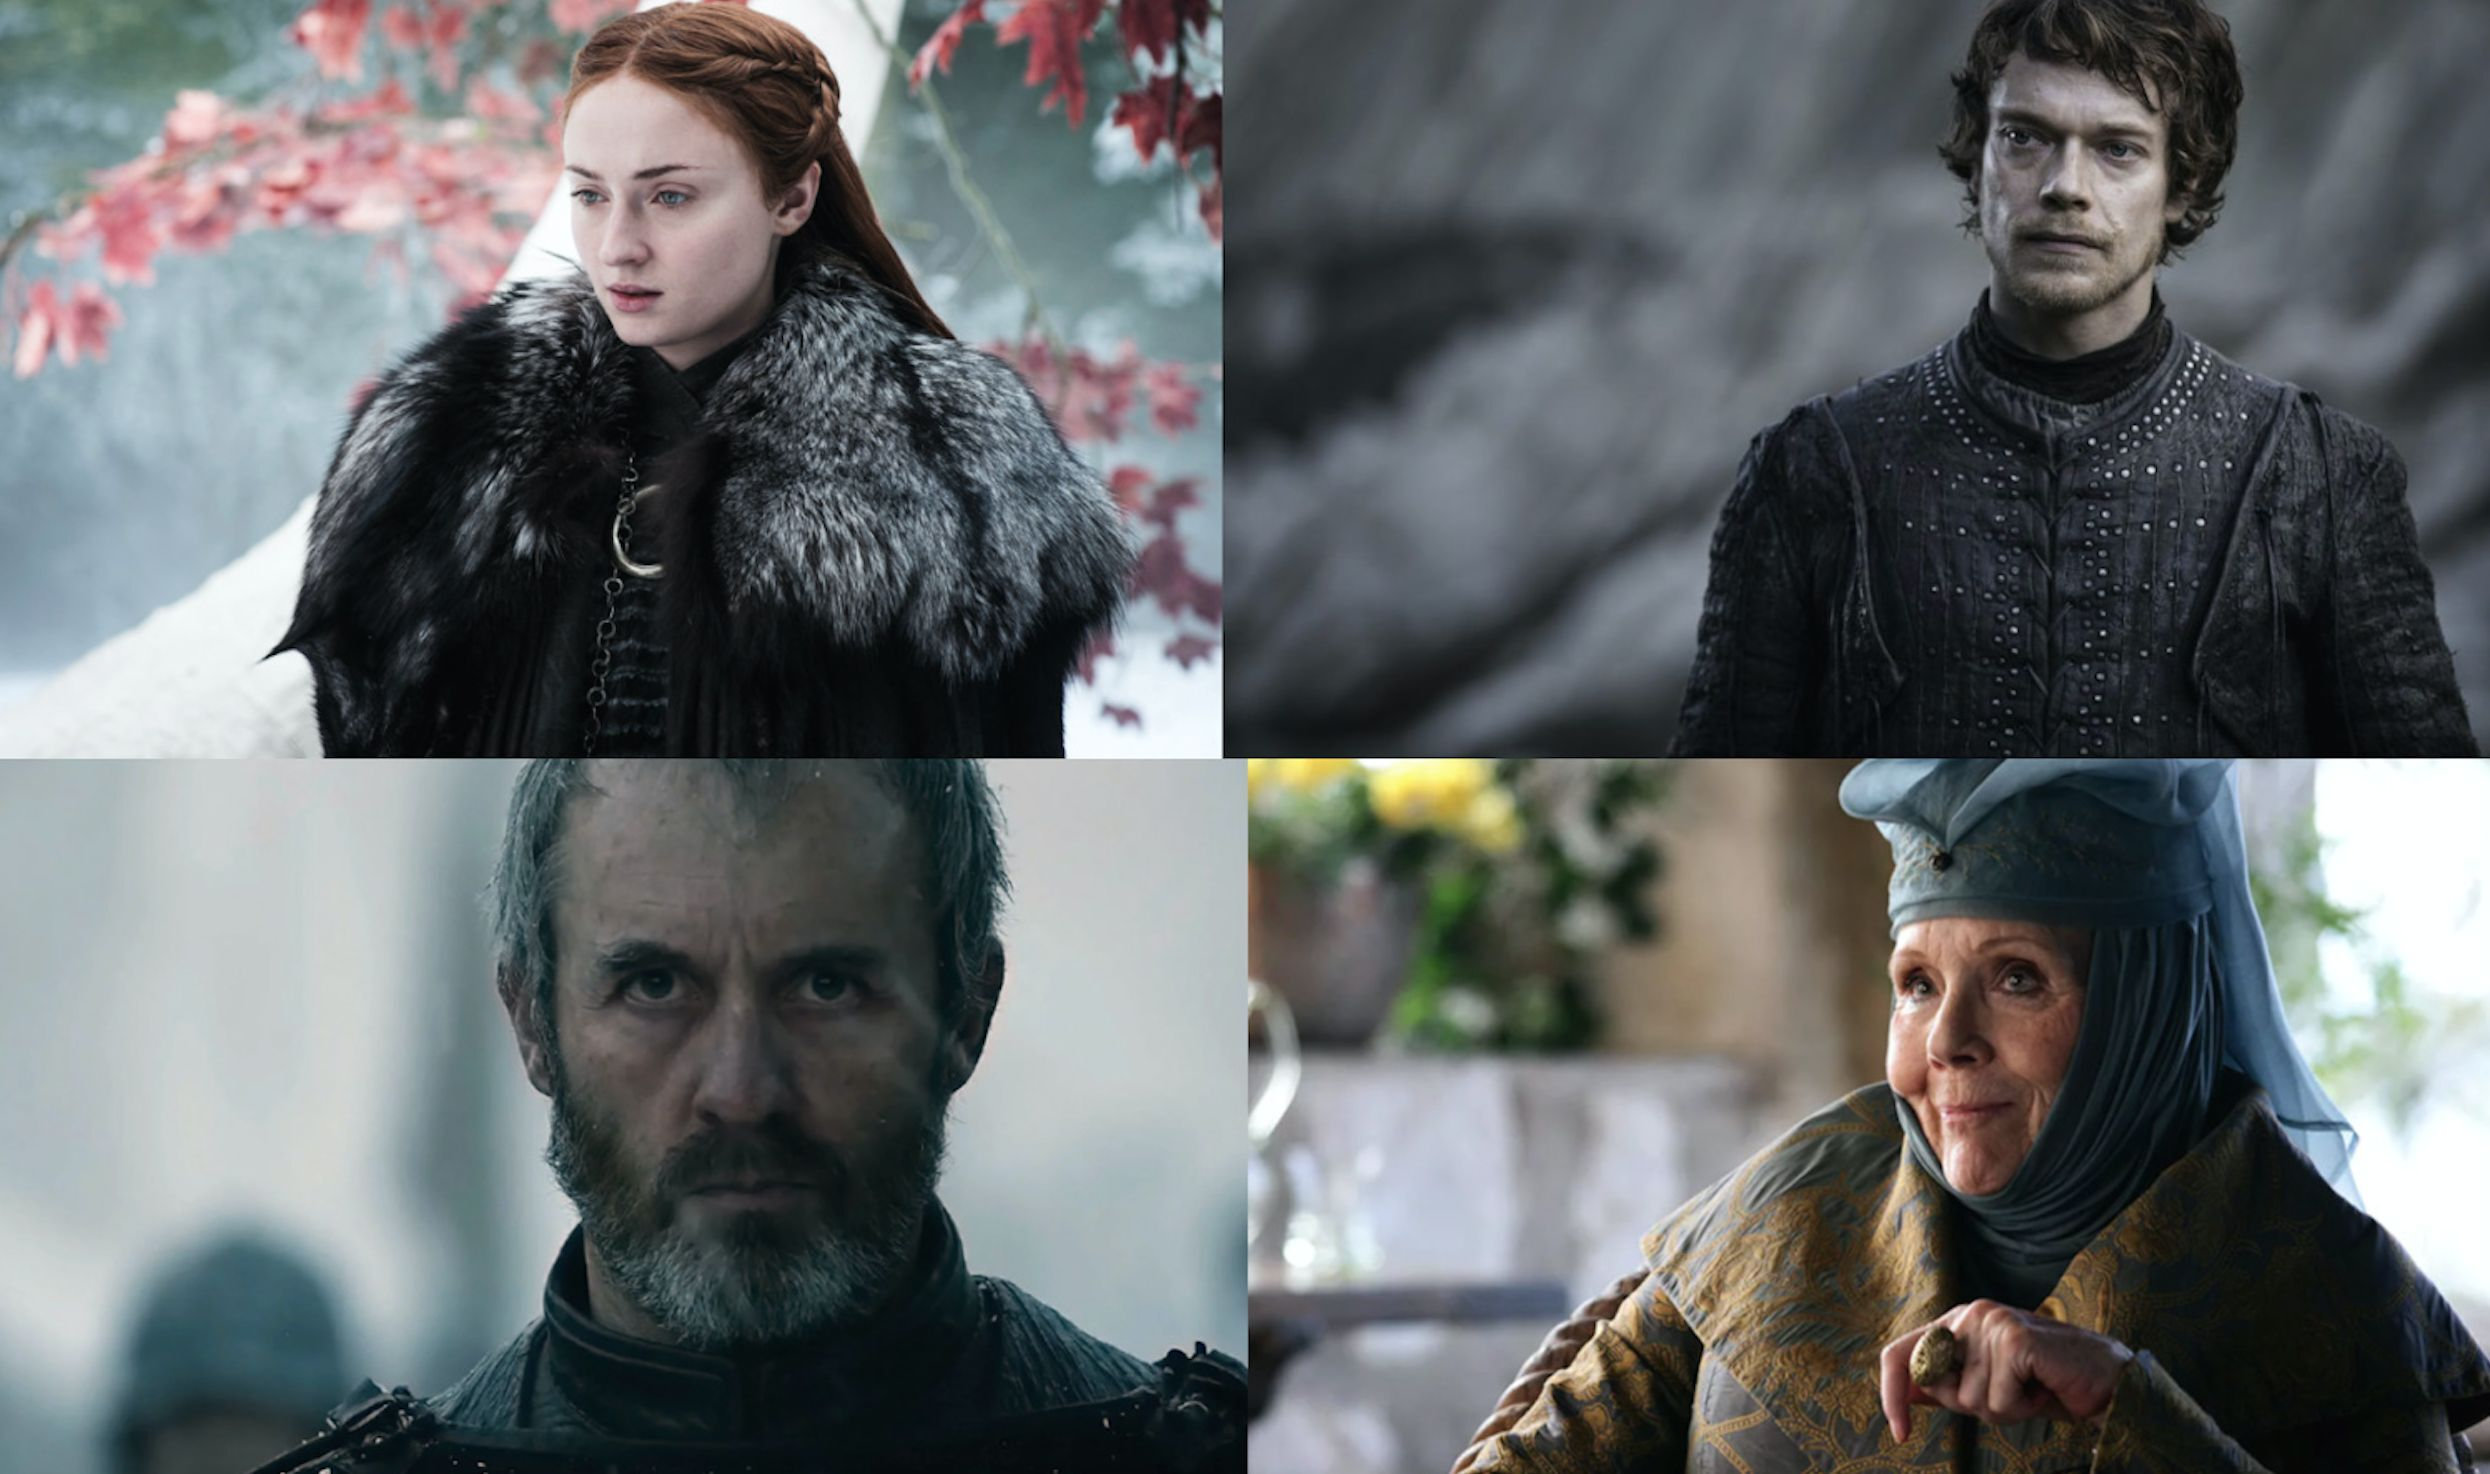 HBO tells the stories of Houses Stark, Lannister, Baratheon and more